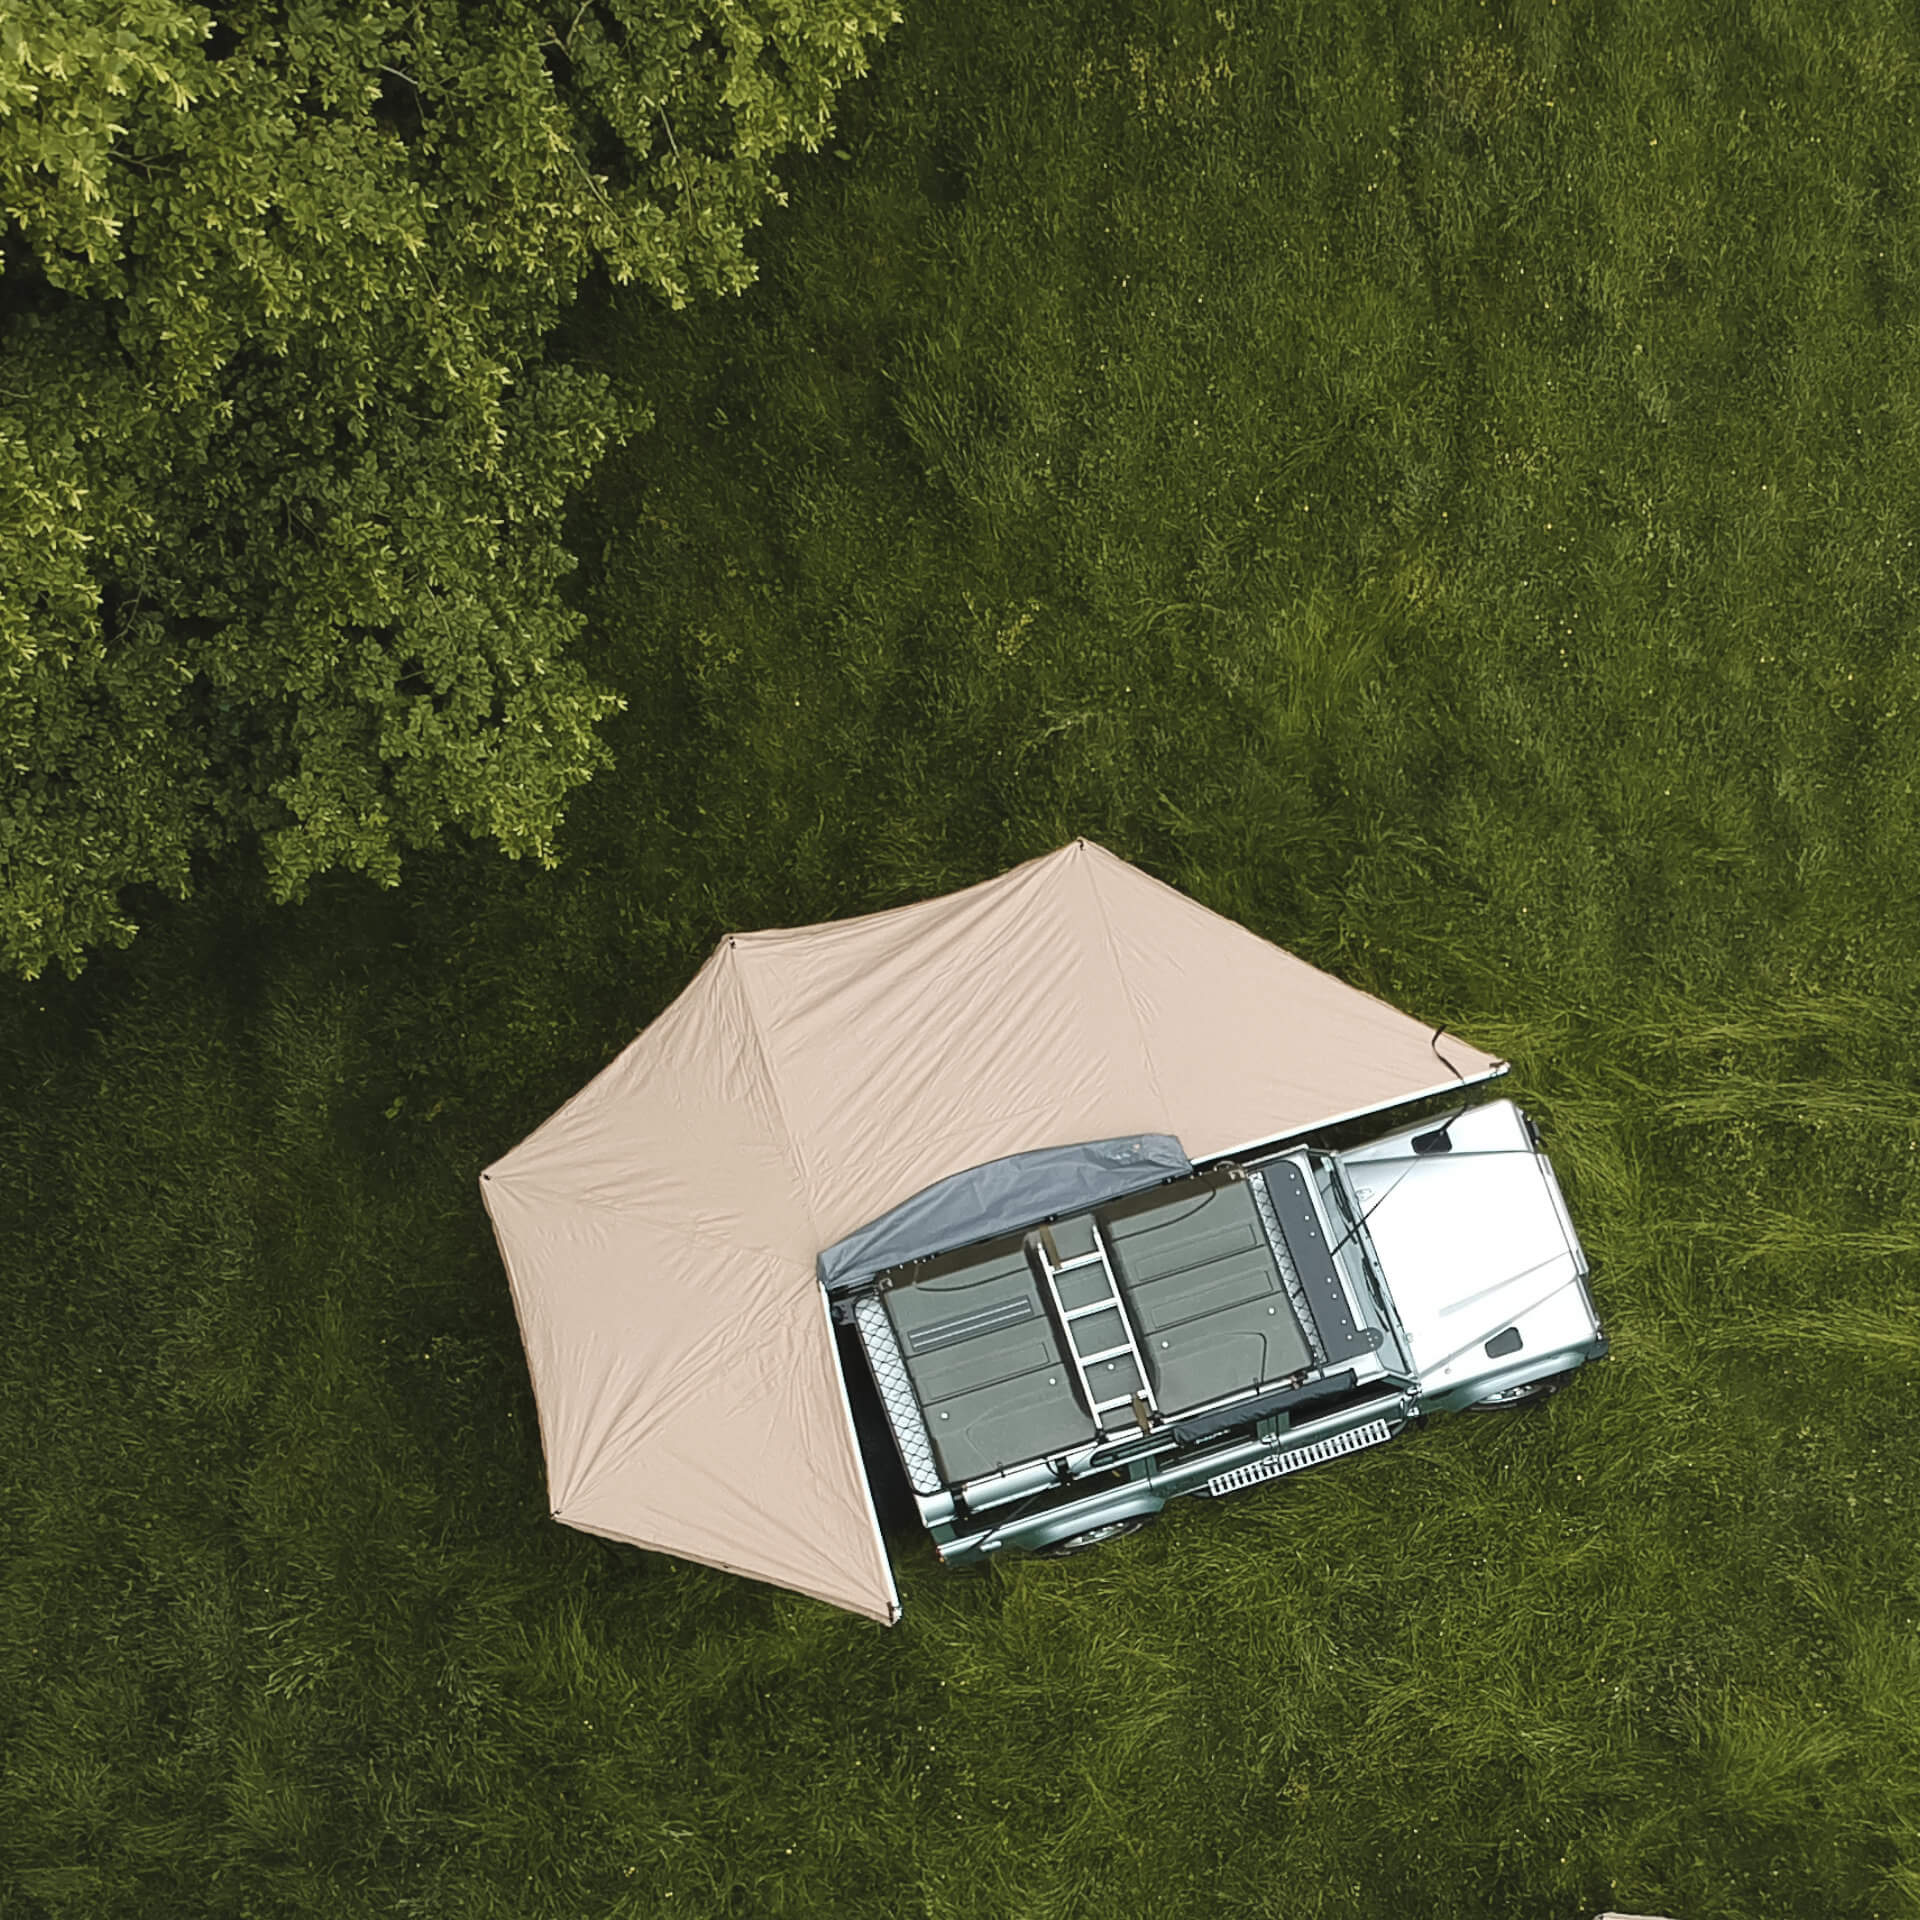 Direct4x4 270 Overland Expedition Fold-Out Vehicle Camping Side Awning